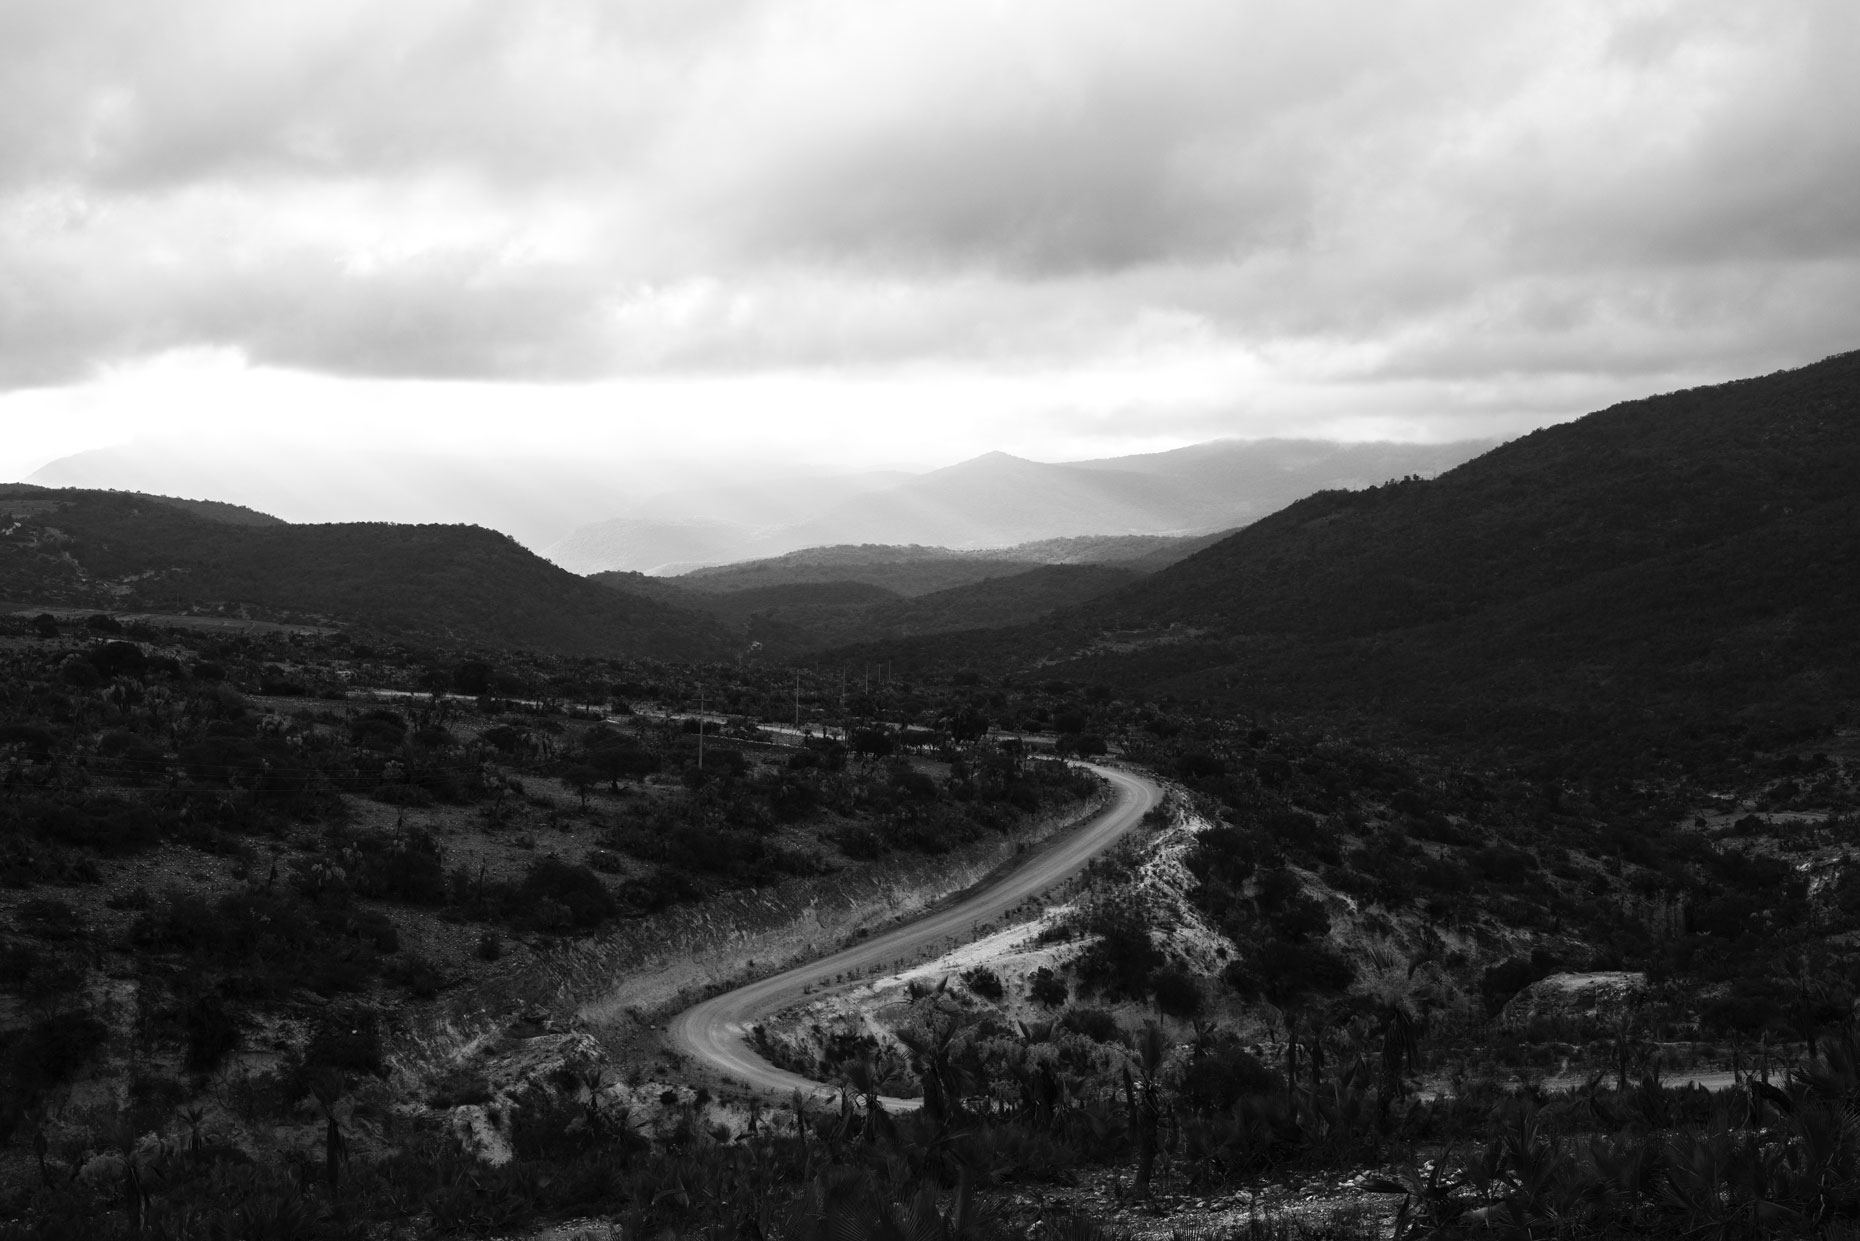 Road in the mountains of Oaxaca